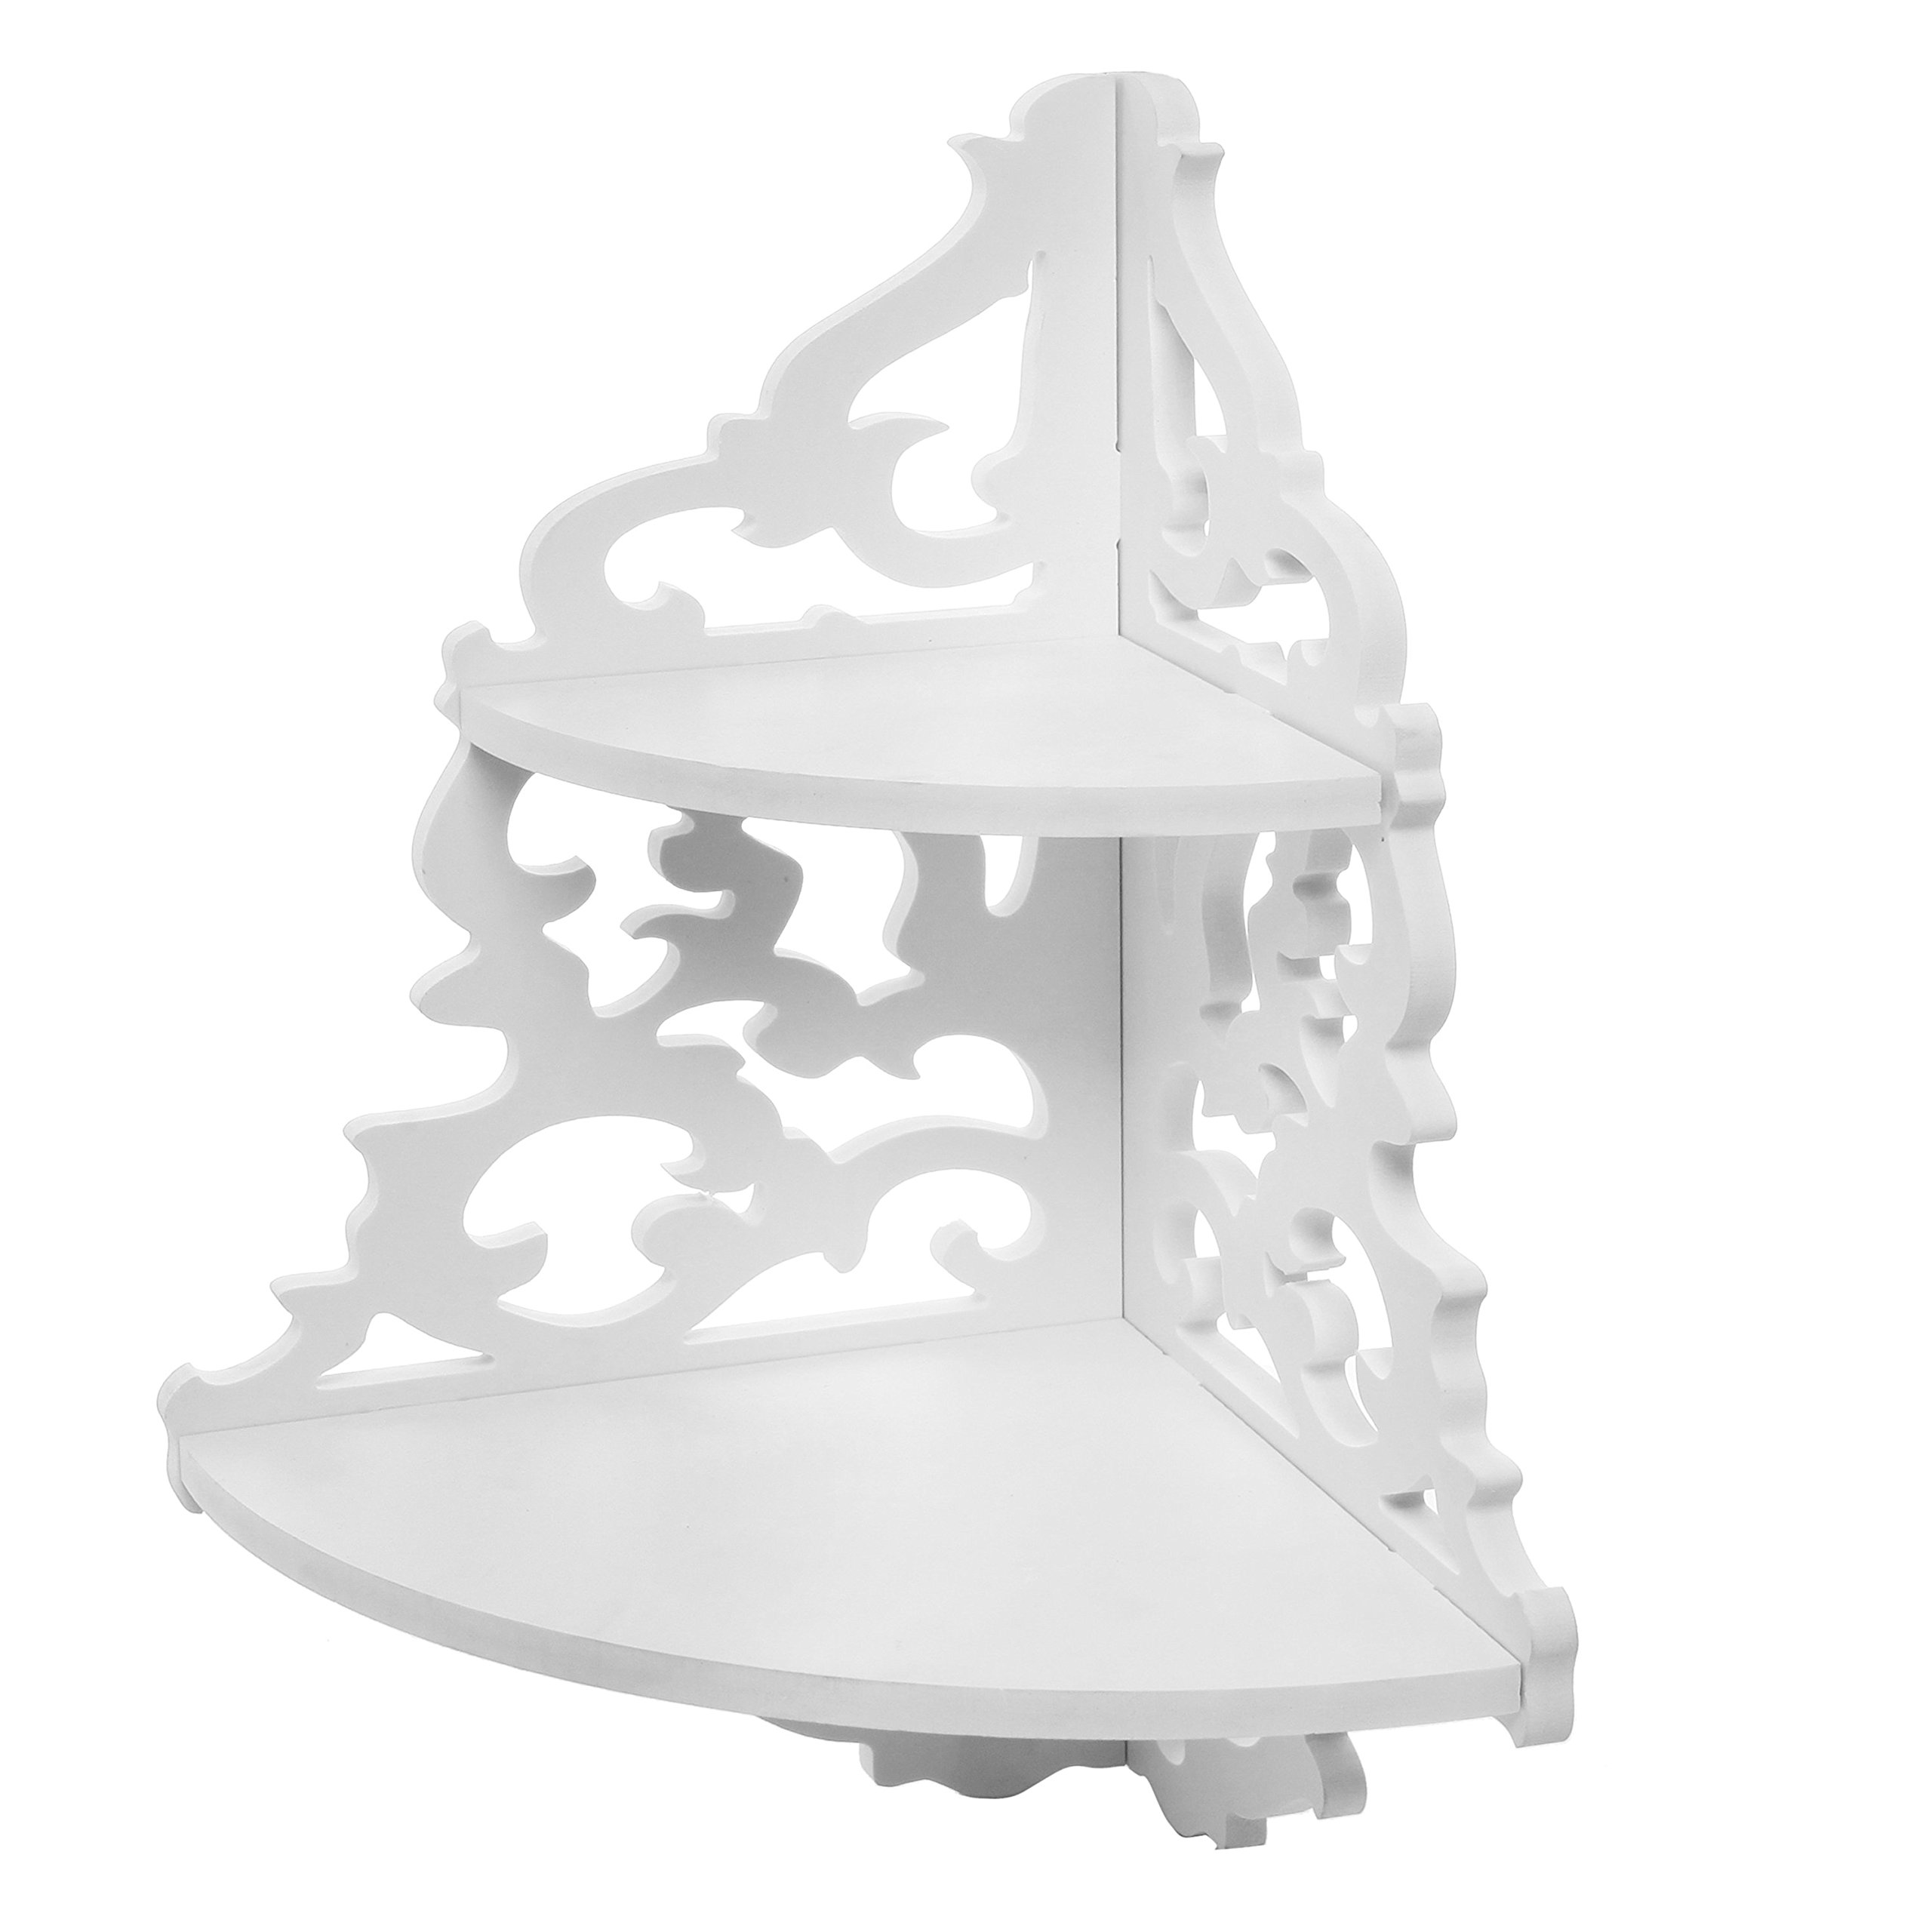 2 Tier White Wall Mounted Pastoral Carved Floating Corner Shelf / Plant & Decor Display Rack - MyGift